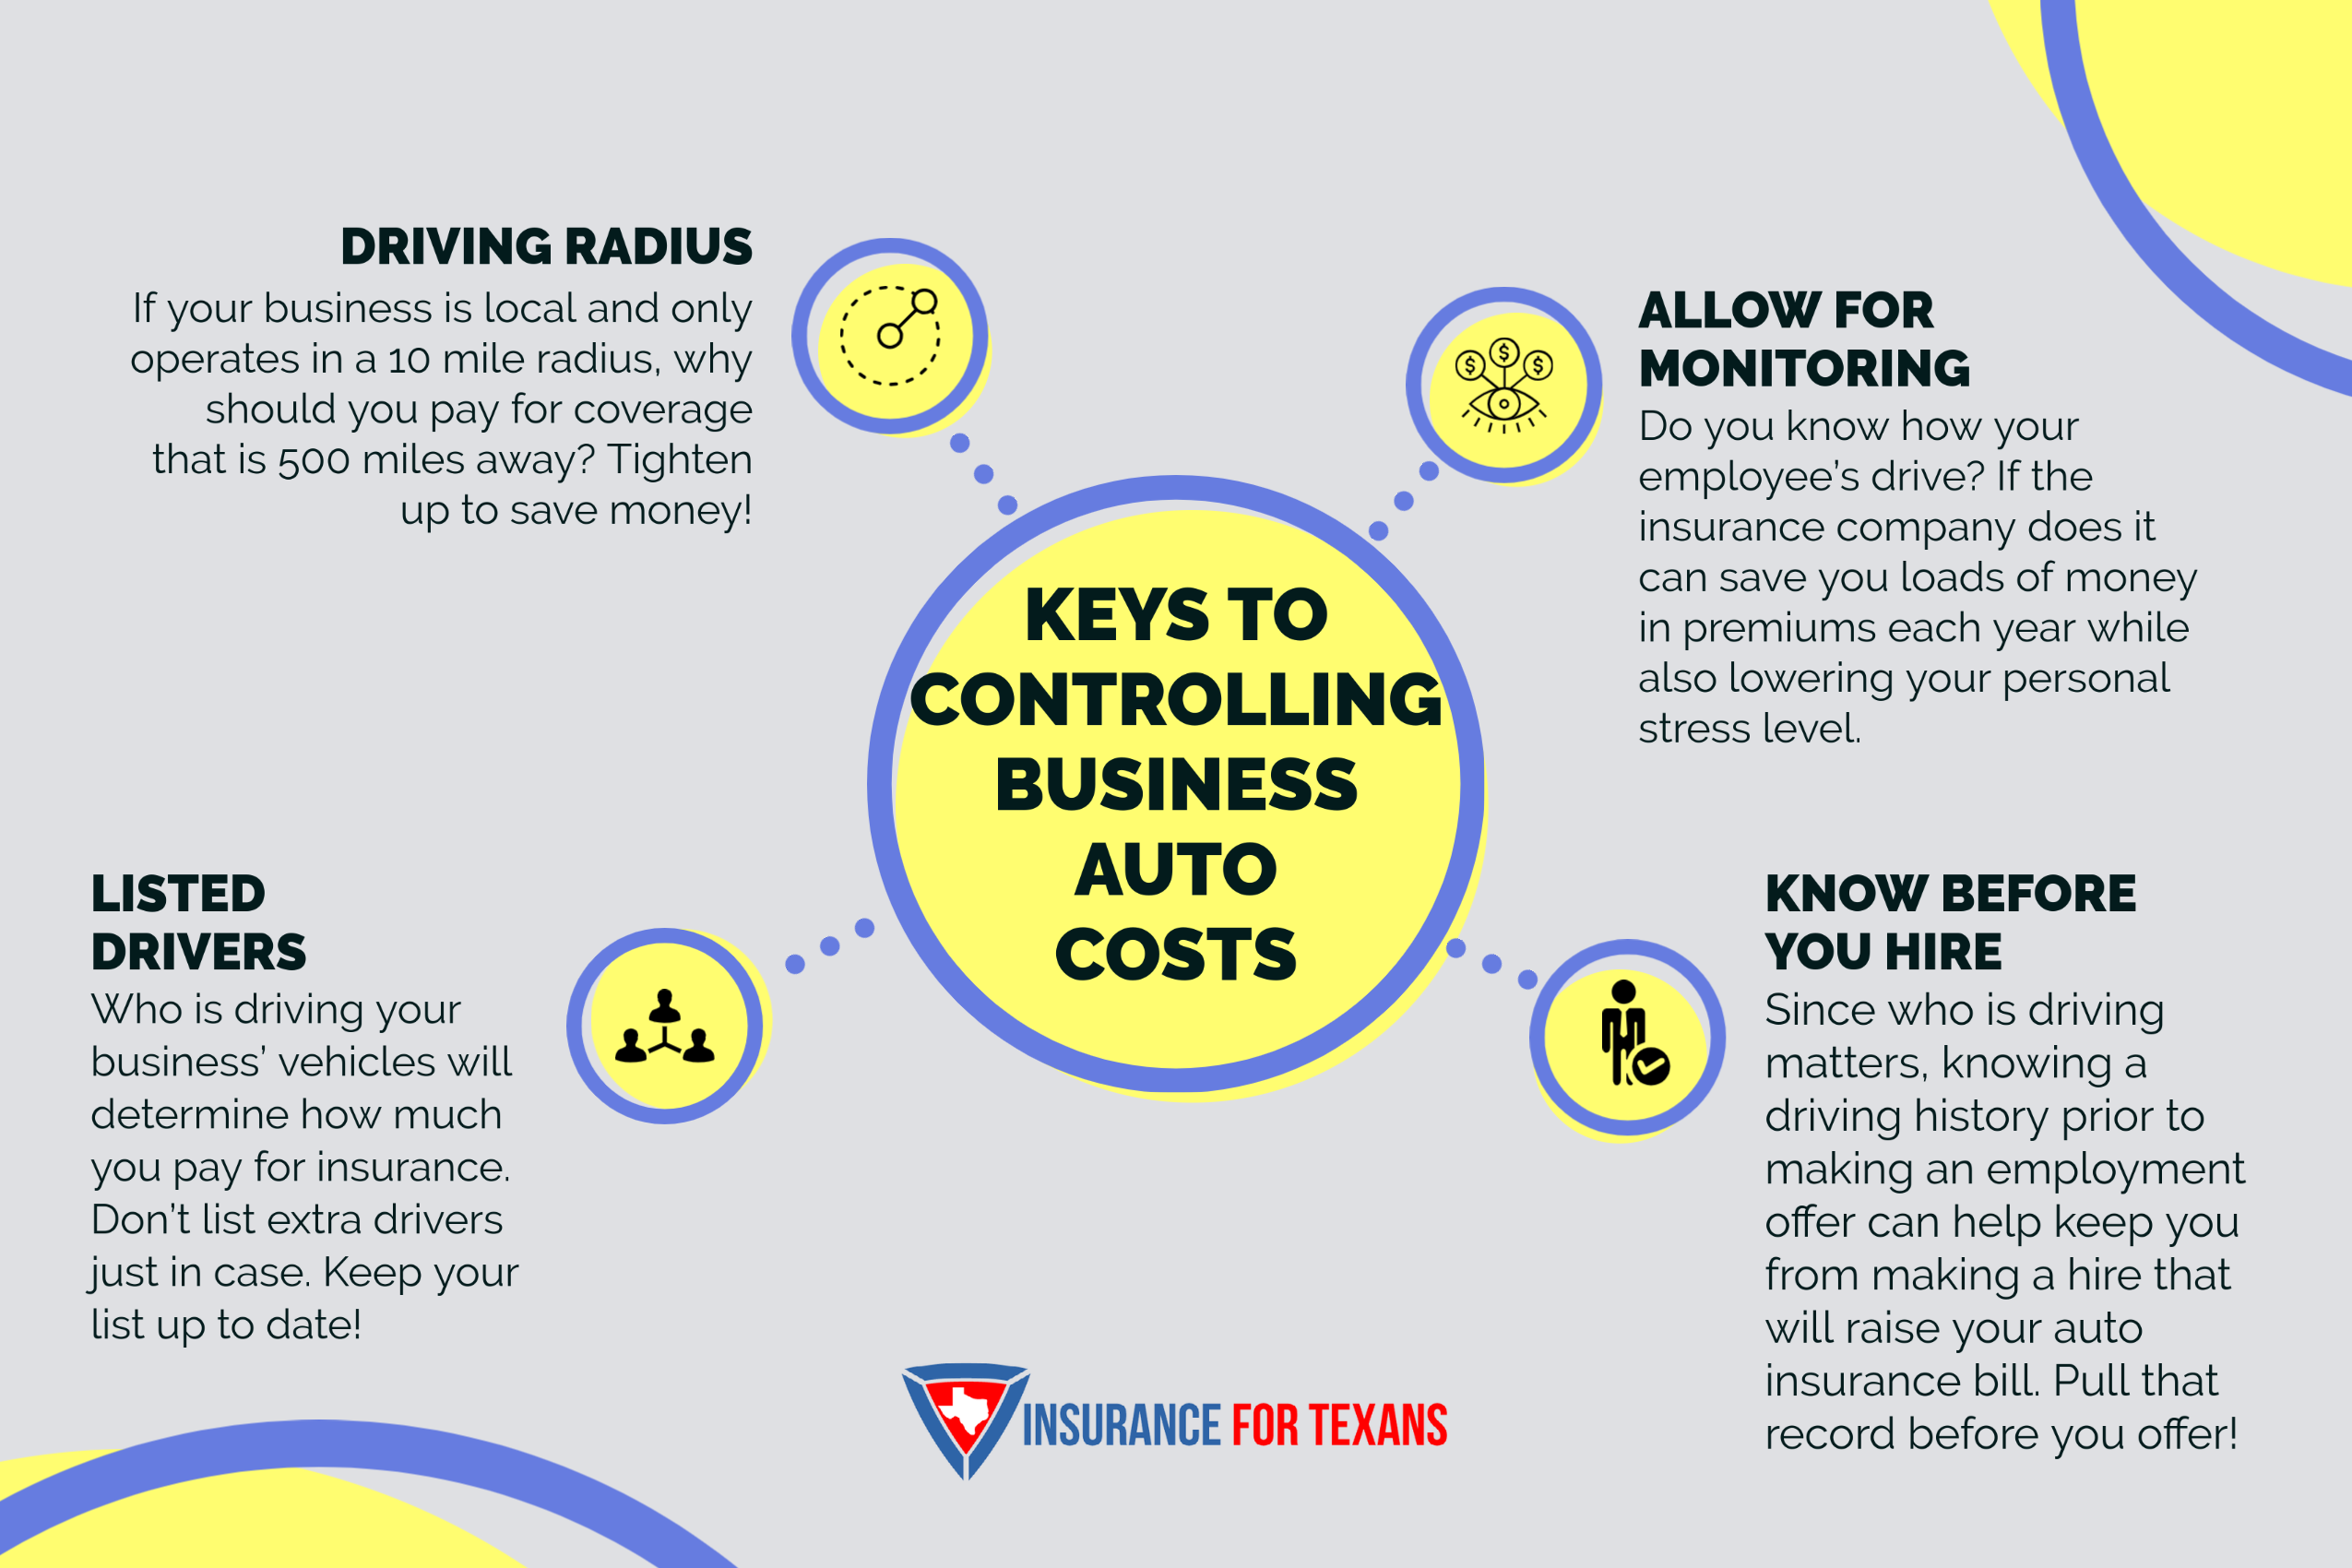 Keys to controlling business auto costs